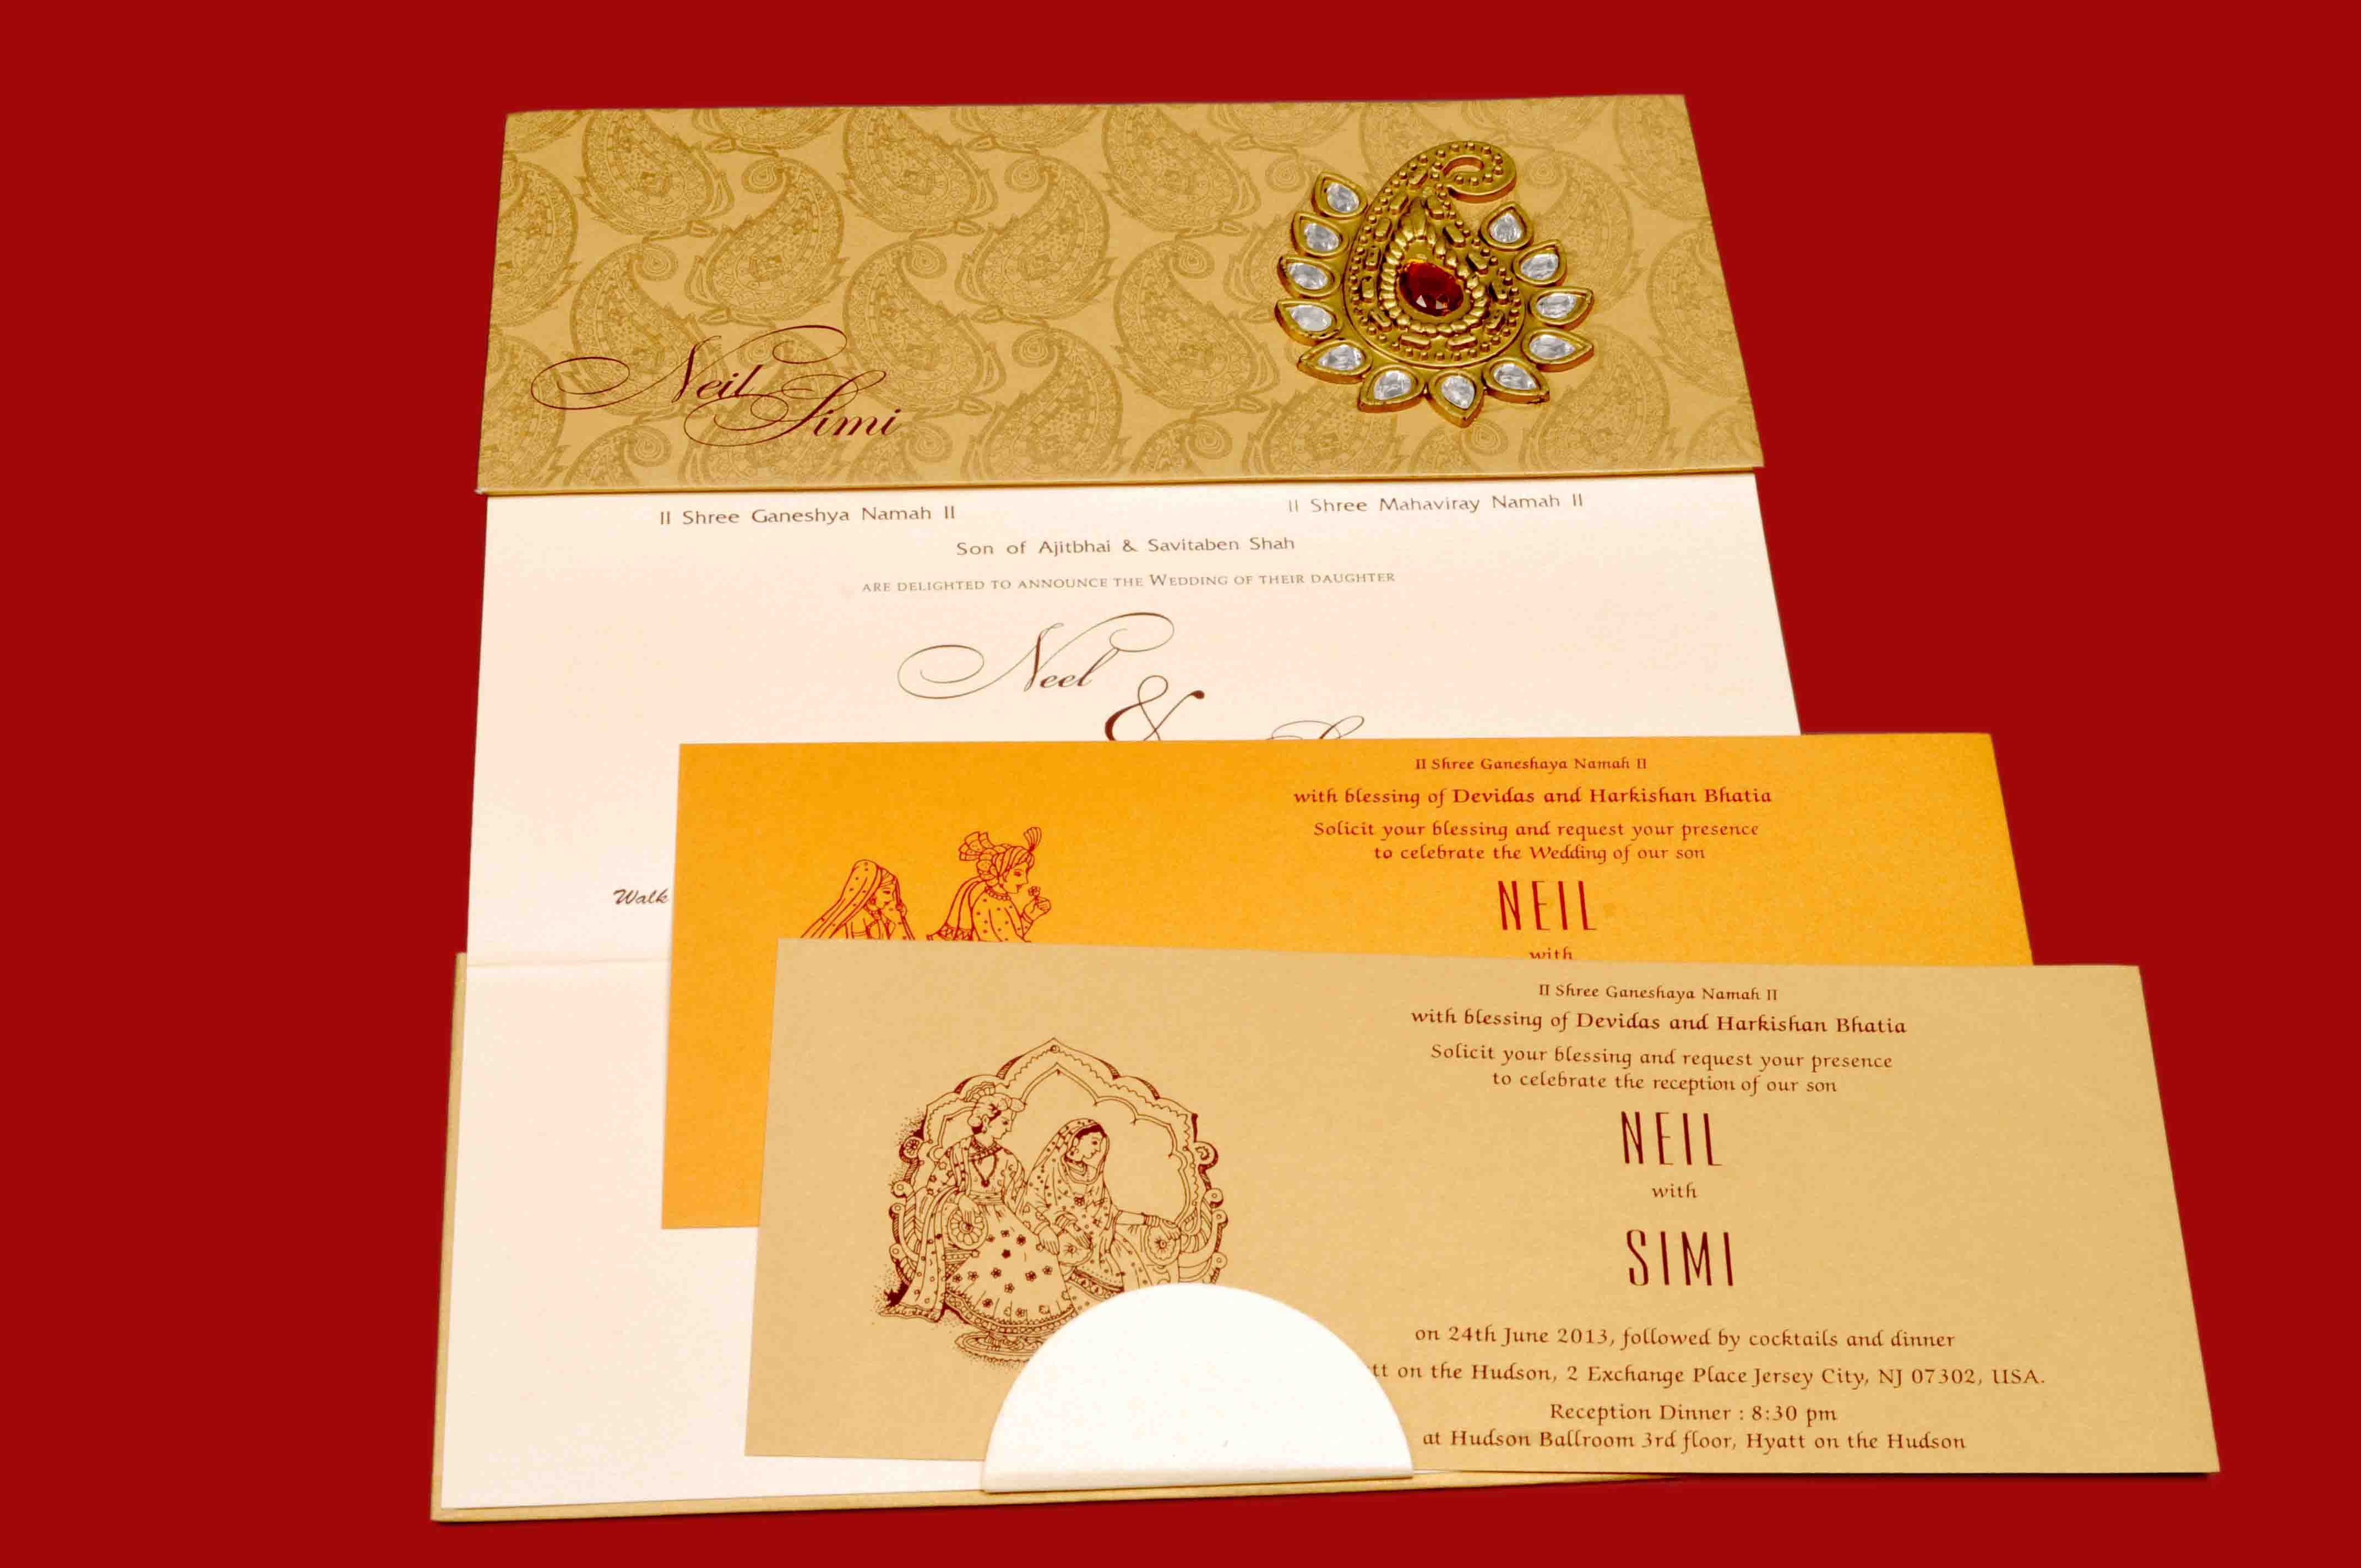 Indian Wedding Invitation Ideas is awesome invitations ideas